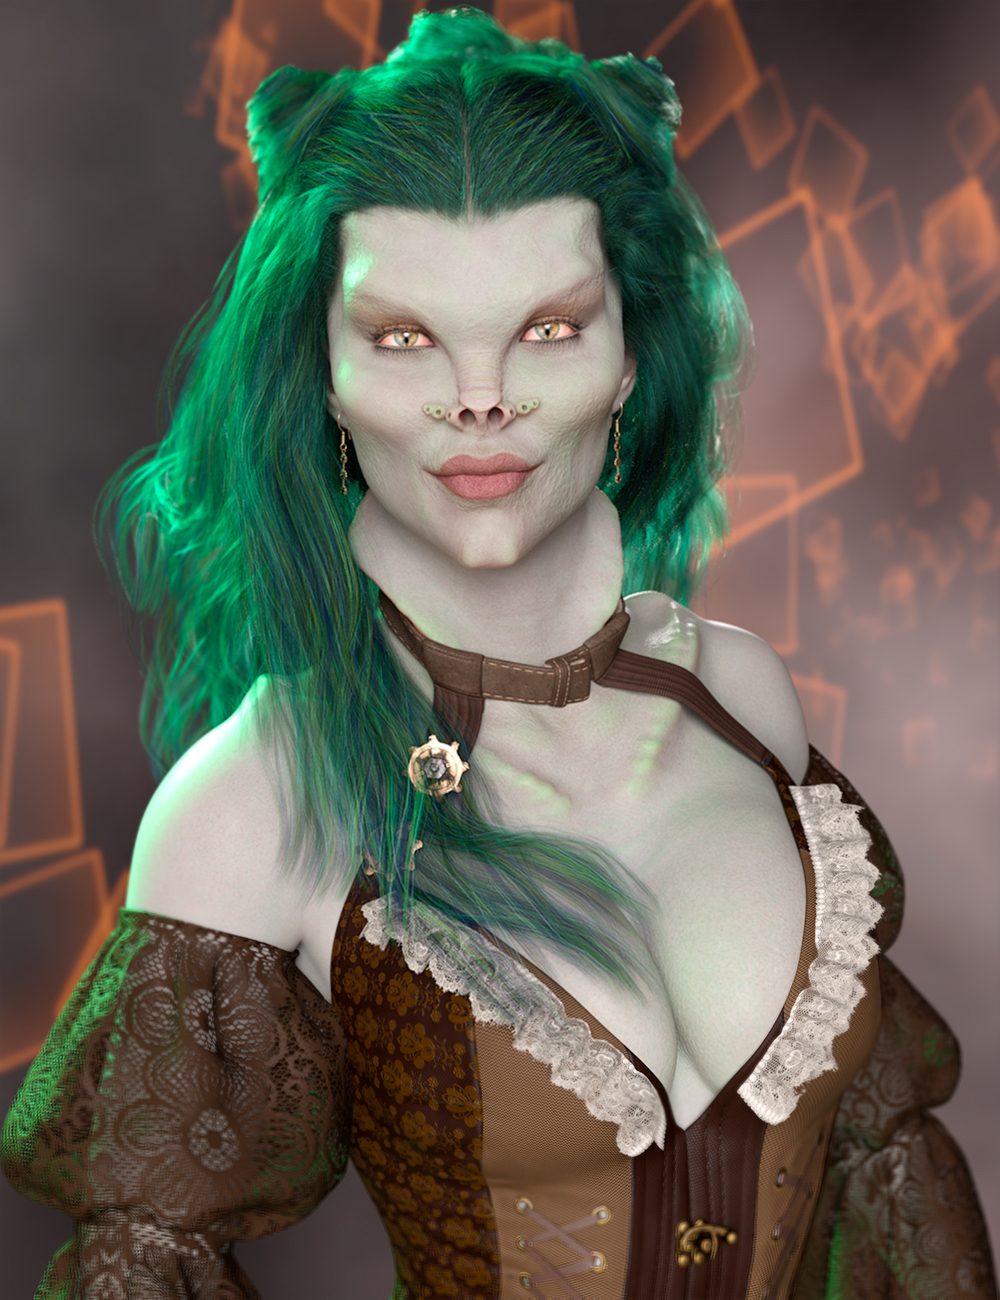 Mst Morelia HD for Honni 8 by: Mstene, 3D Models by Daz 3D